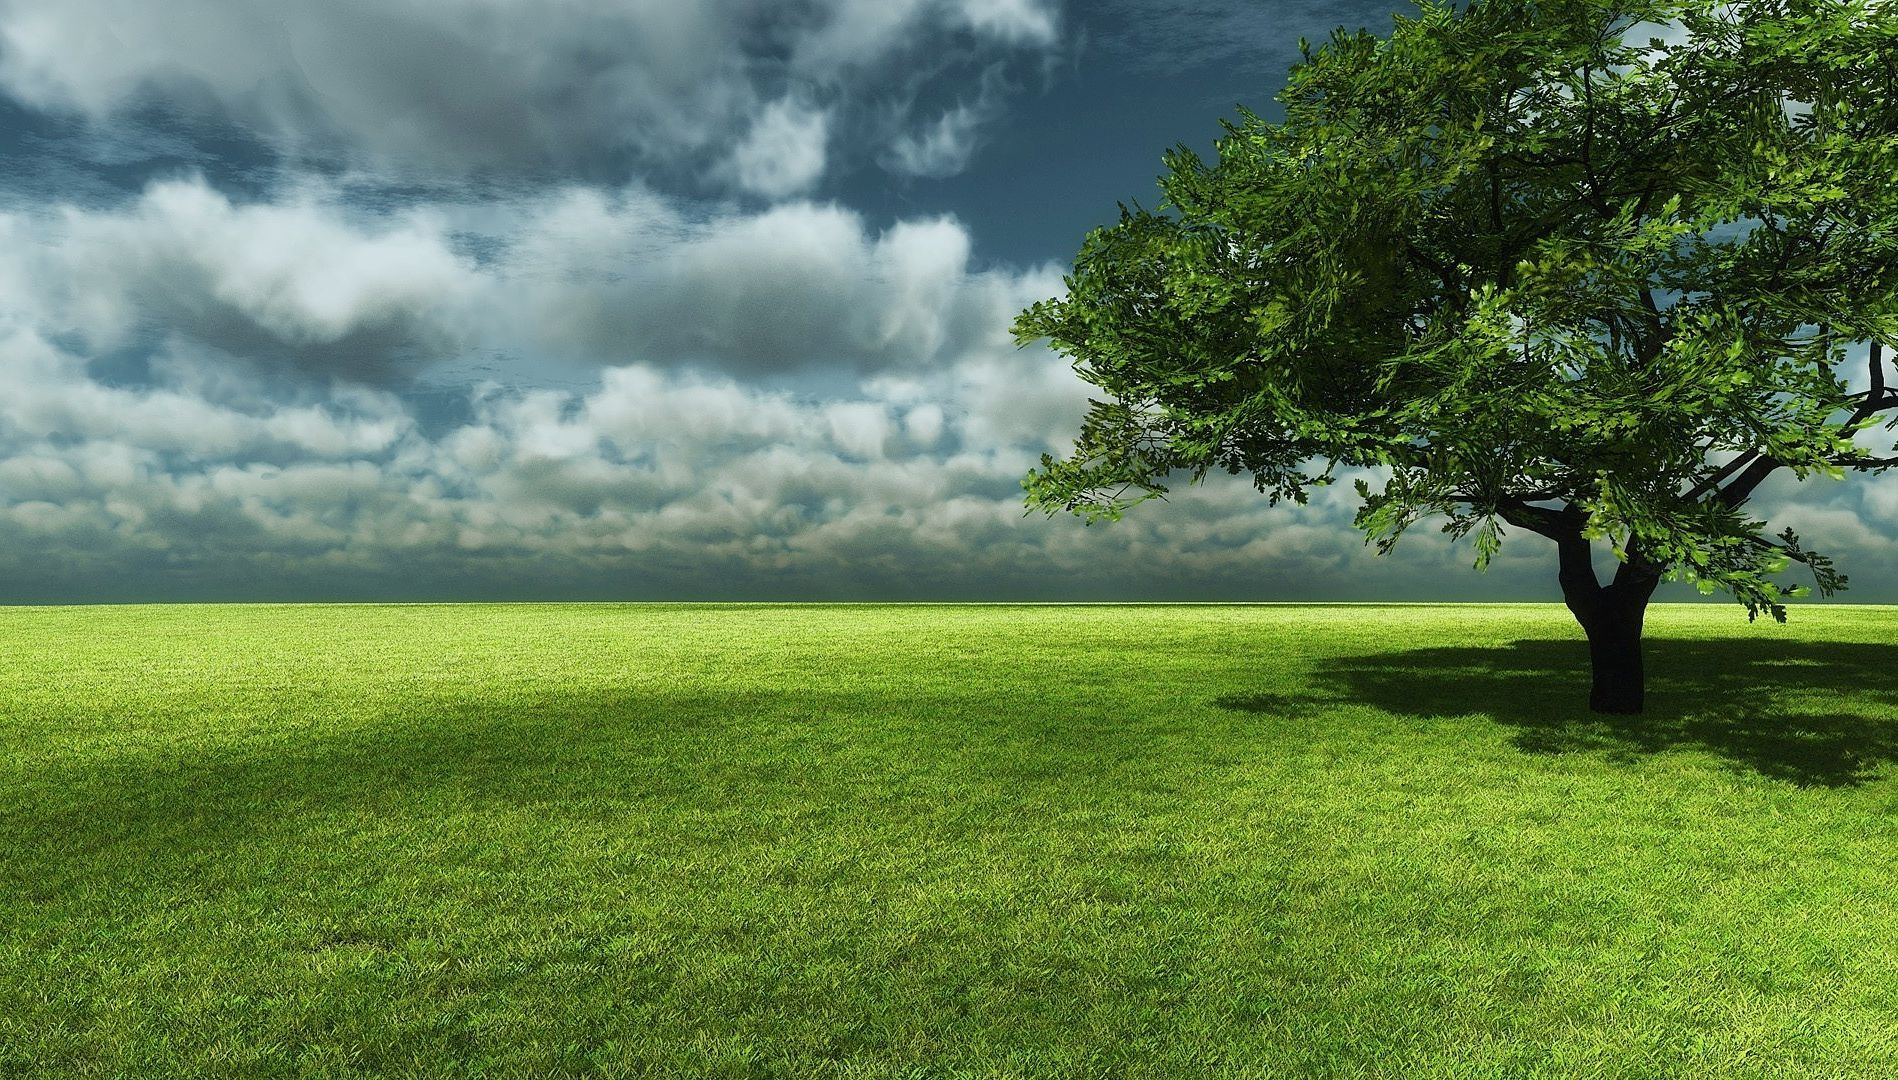 Big Tree with Grass Field Landscape wallpaper | WALLPAPER ...